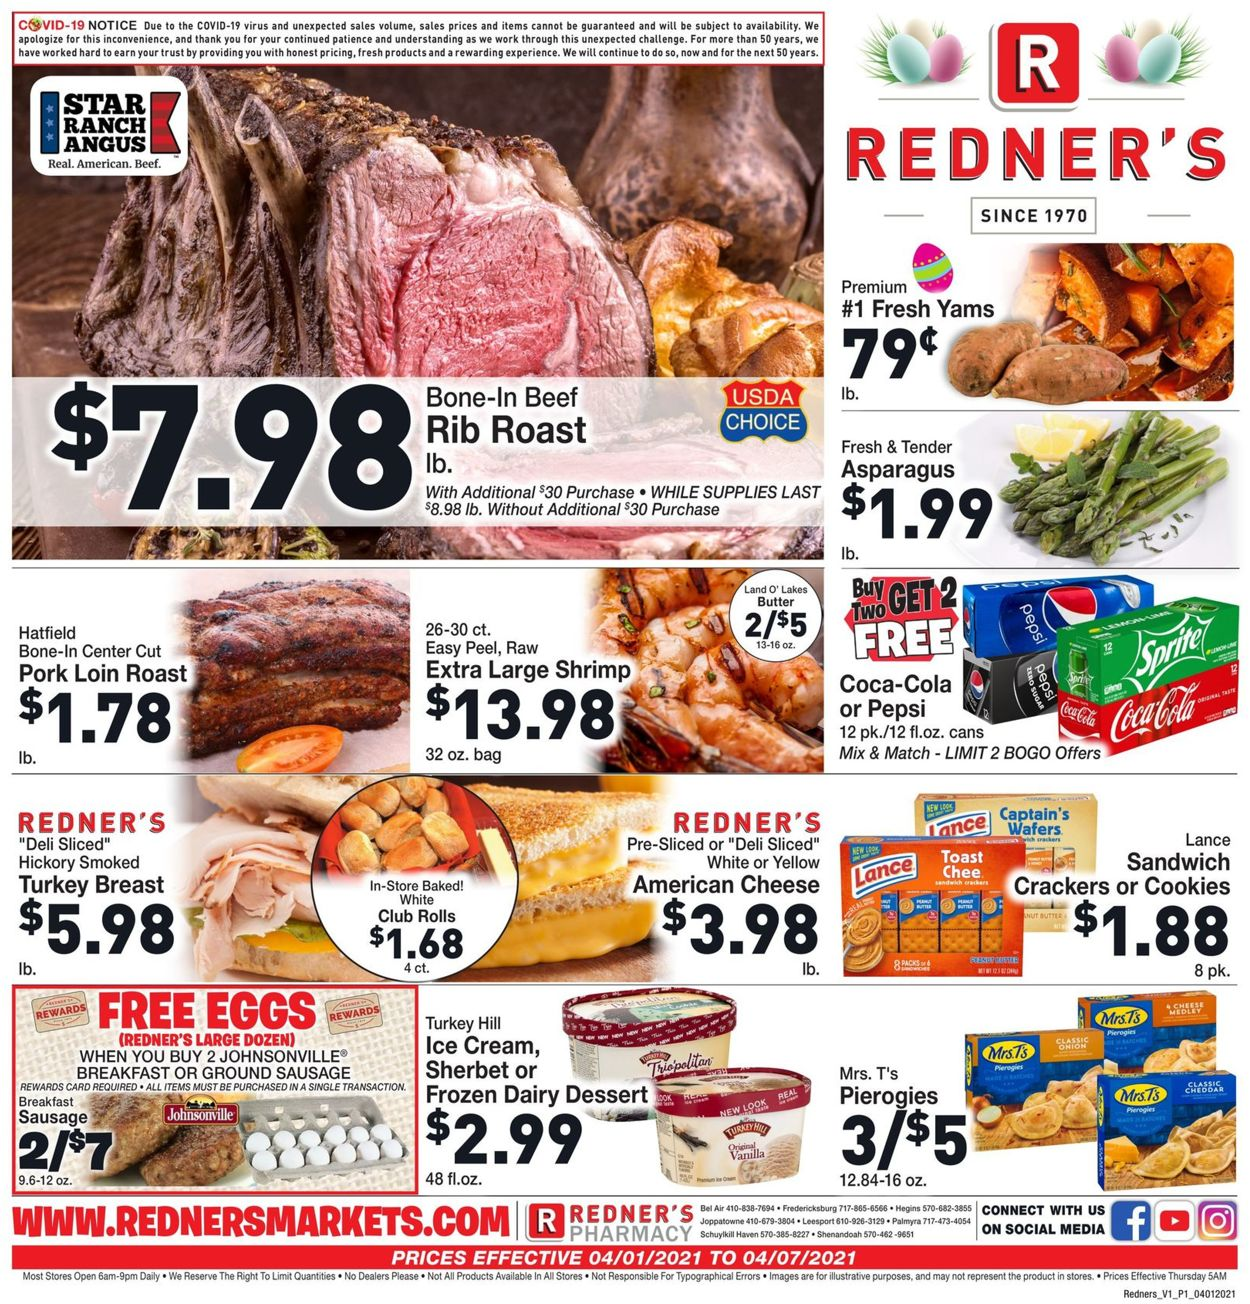 Catalogue Redner's Warehouse Market - Easter 2021 Ad from 04/01/2021